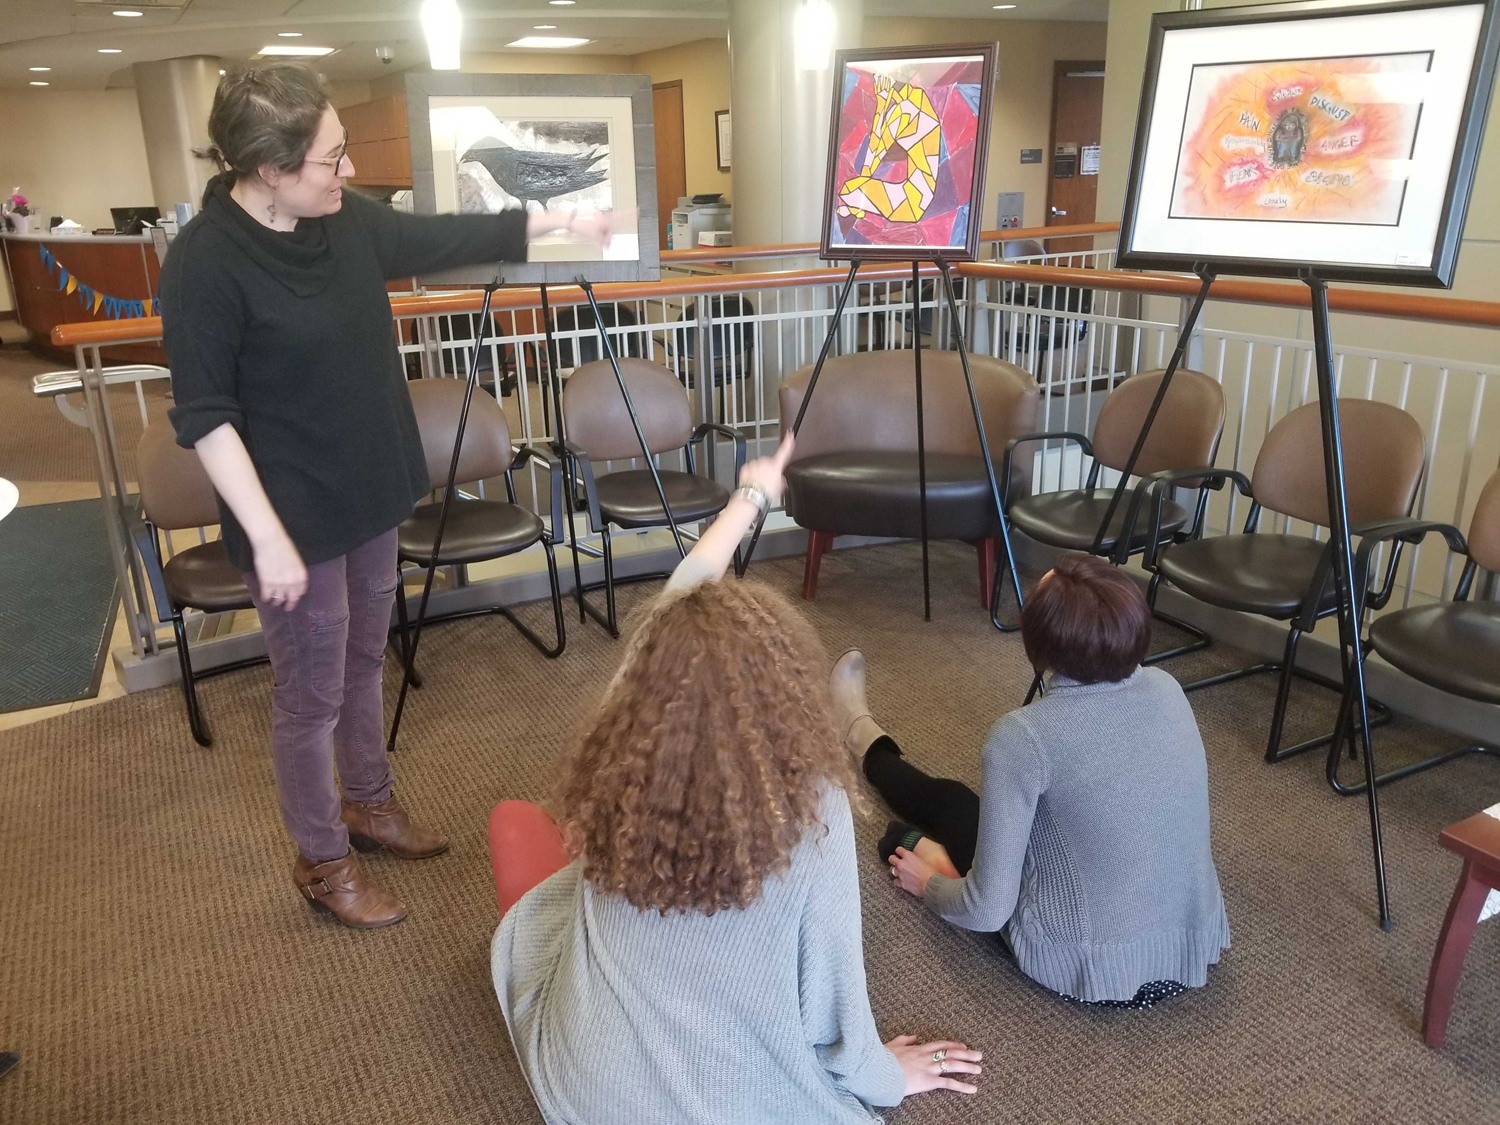 The Renfrew Center had a pop-up gallery in the Wellness Center of Nordenberg Hall, showcasing artwork by women battling eating disorders.